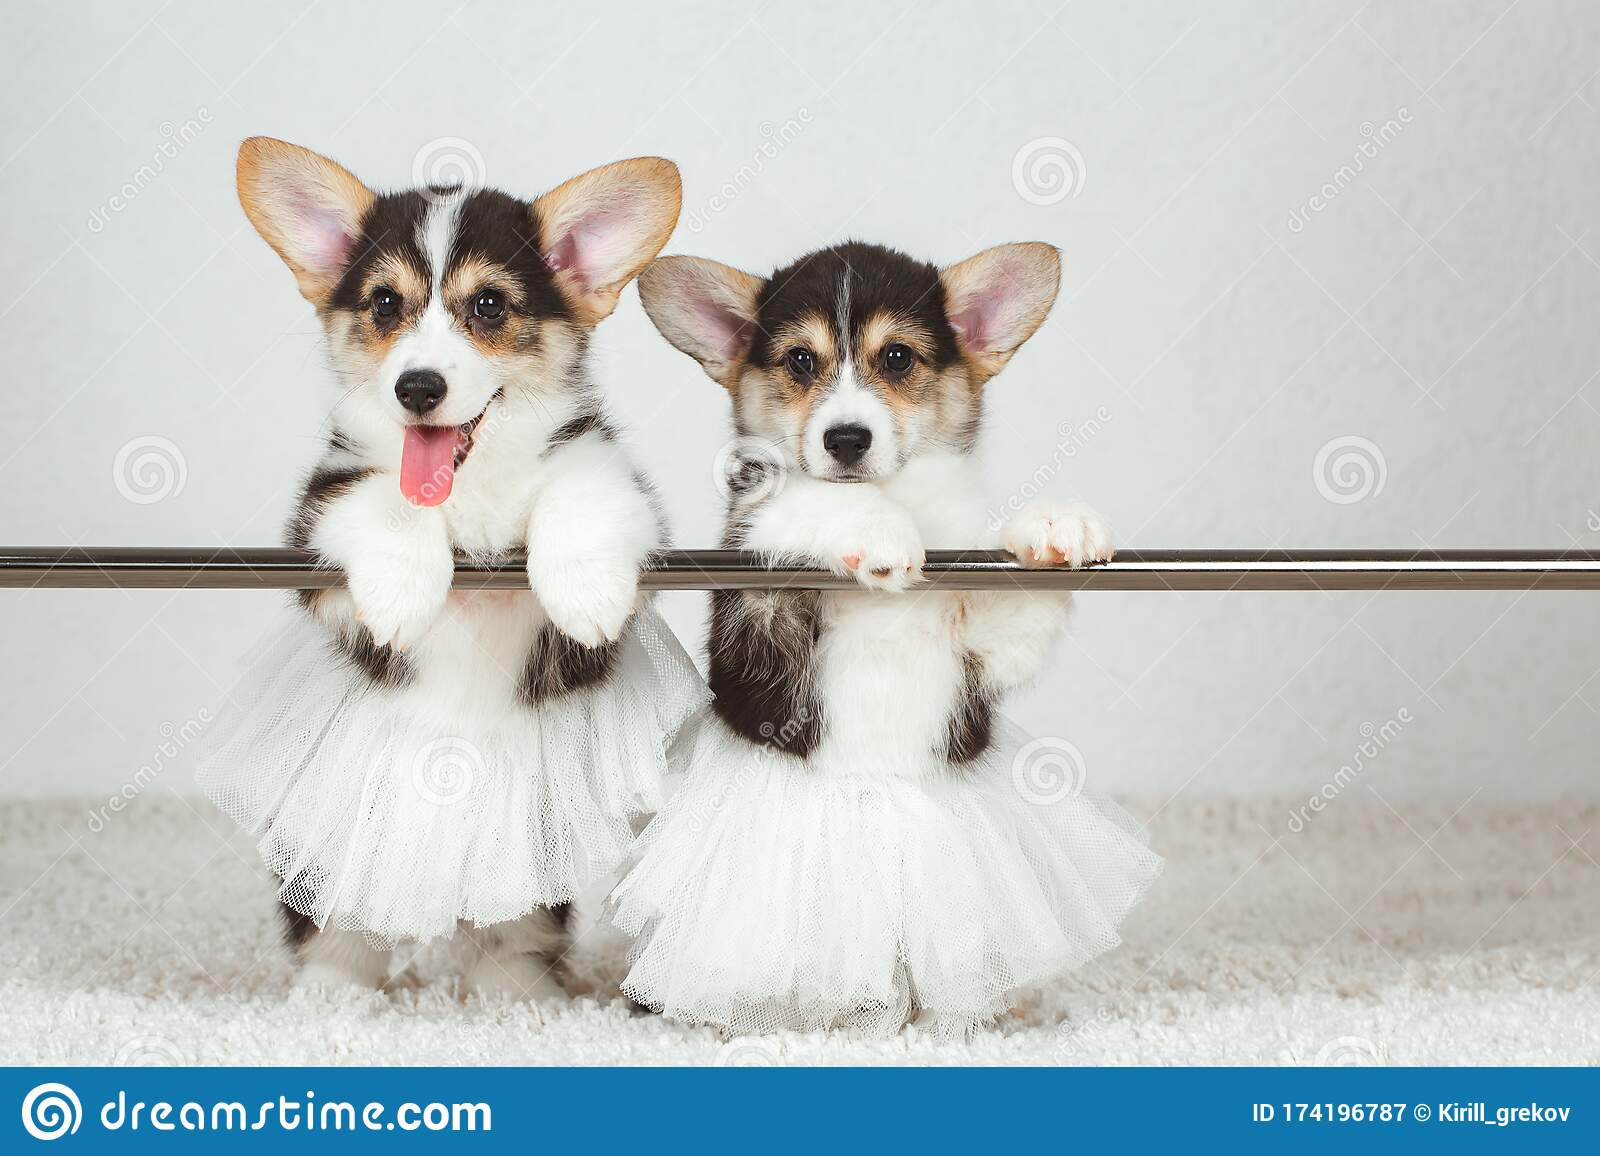 Corgi Puppies At The Ballet Dancer Stock Image Image Of Child Friend 174196787